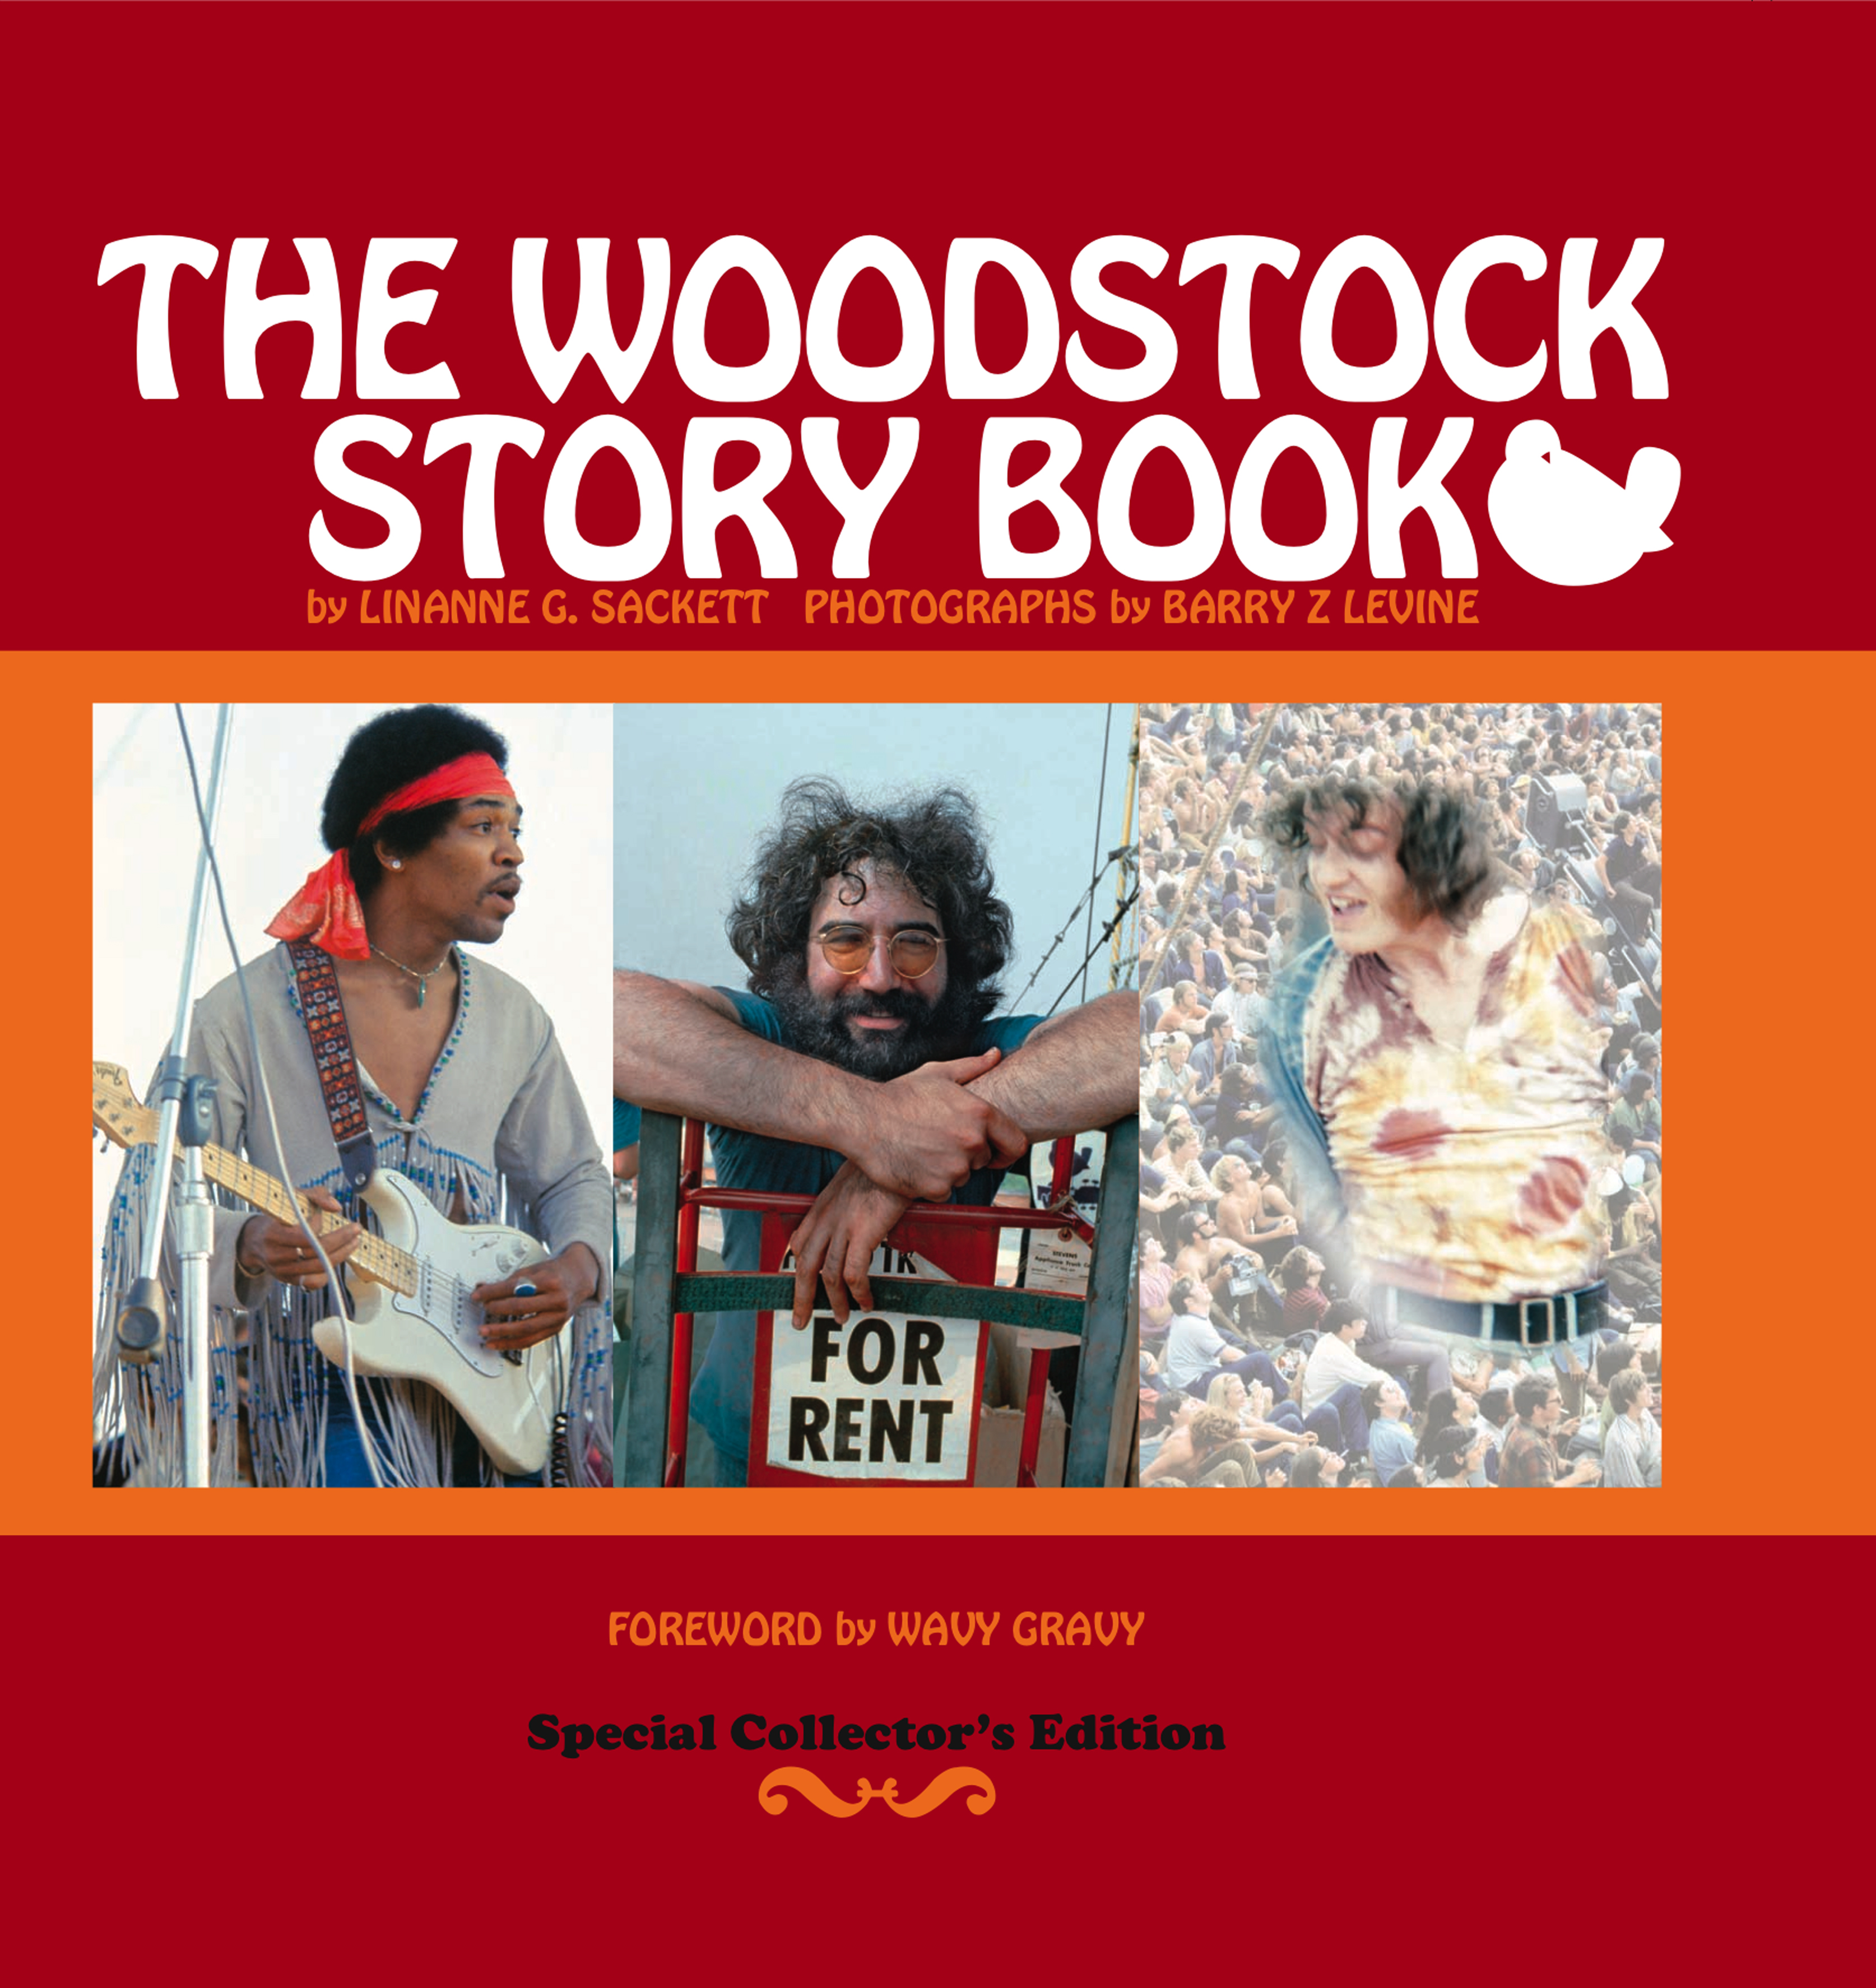 a Book Commemorating the Woodstock Festival 1969, Copyright Barry Z Levine and Linanne G Sackett all rights reserved